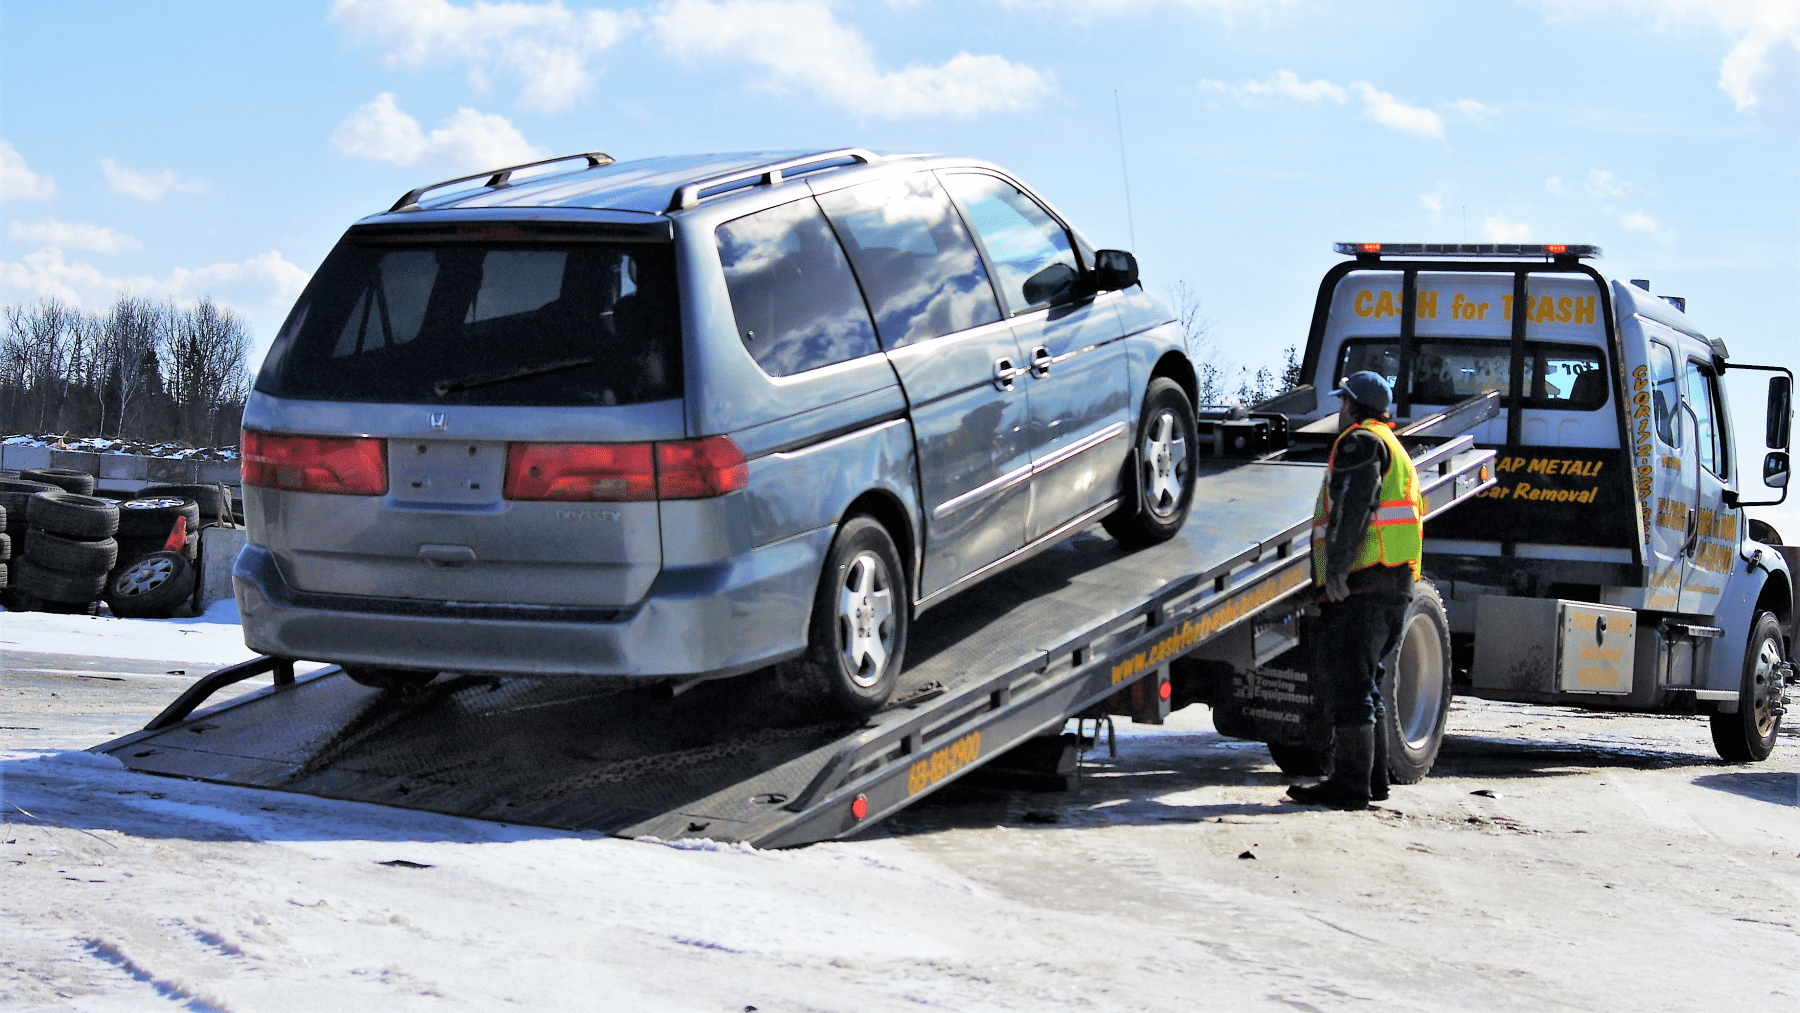 Junk van being towed way for cash in Ottawa